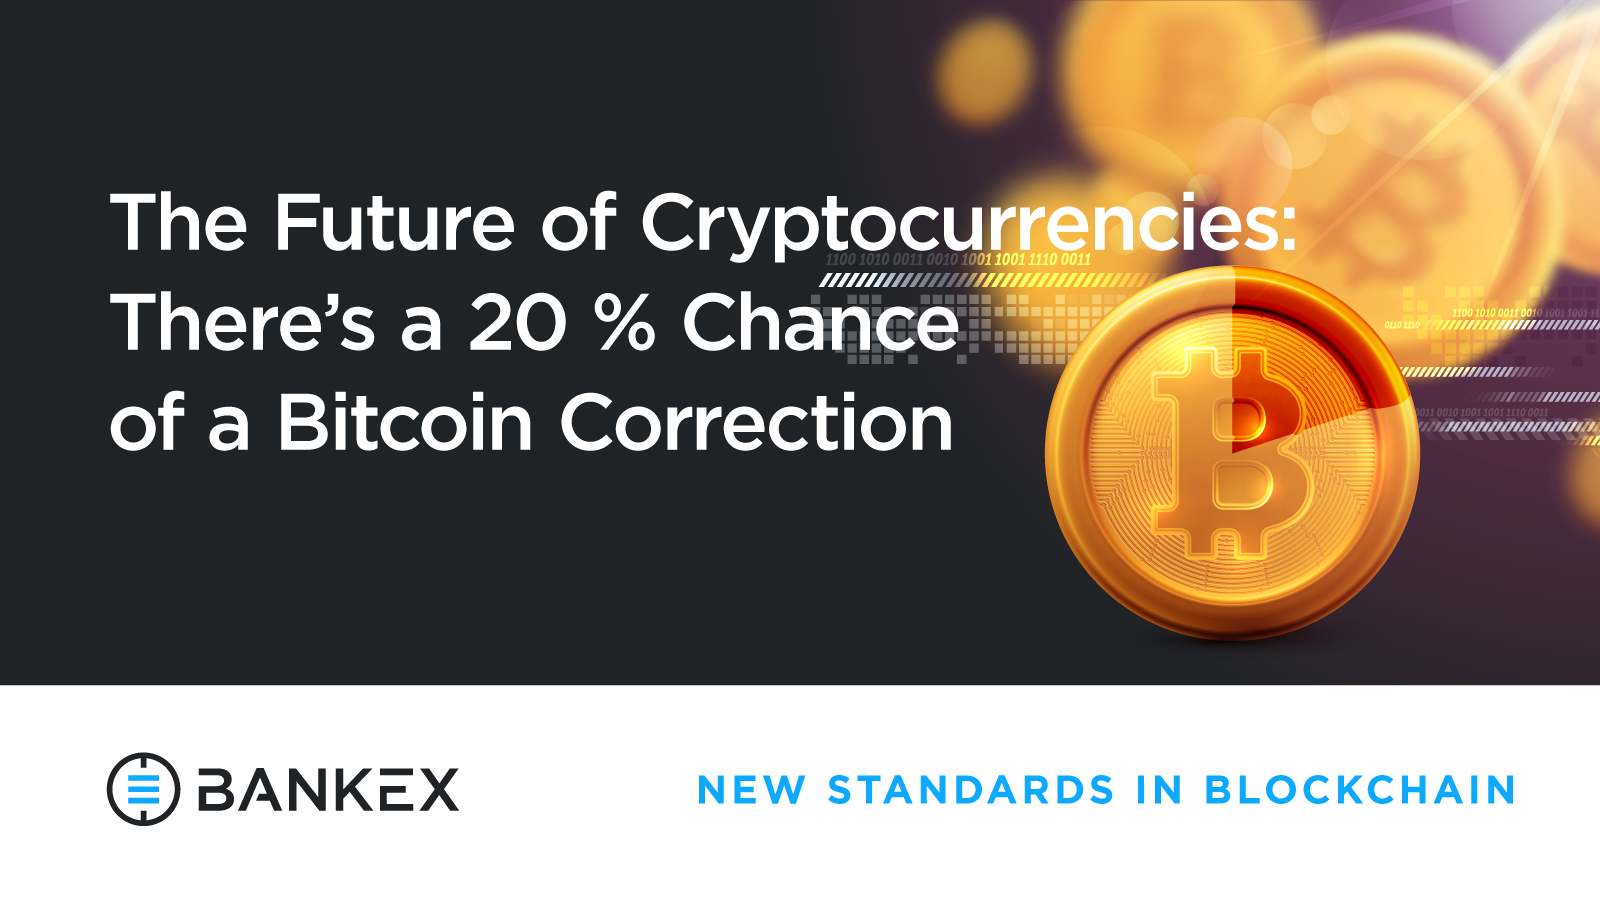 The Future of Cryptocurrencies: There's a 20% Chance of a